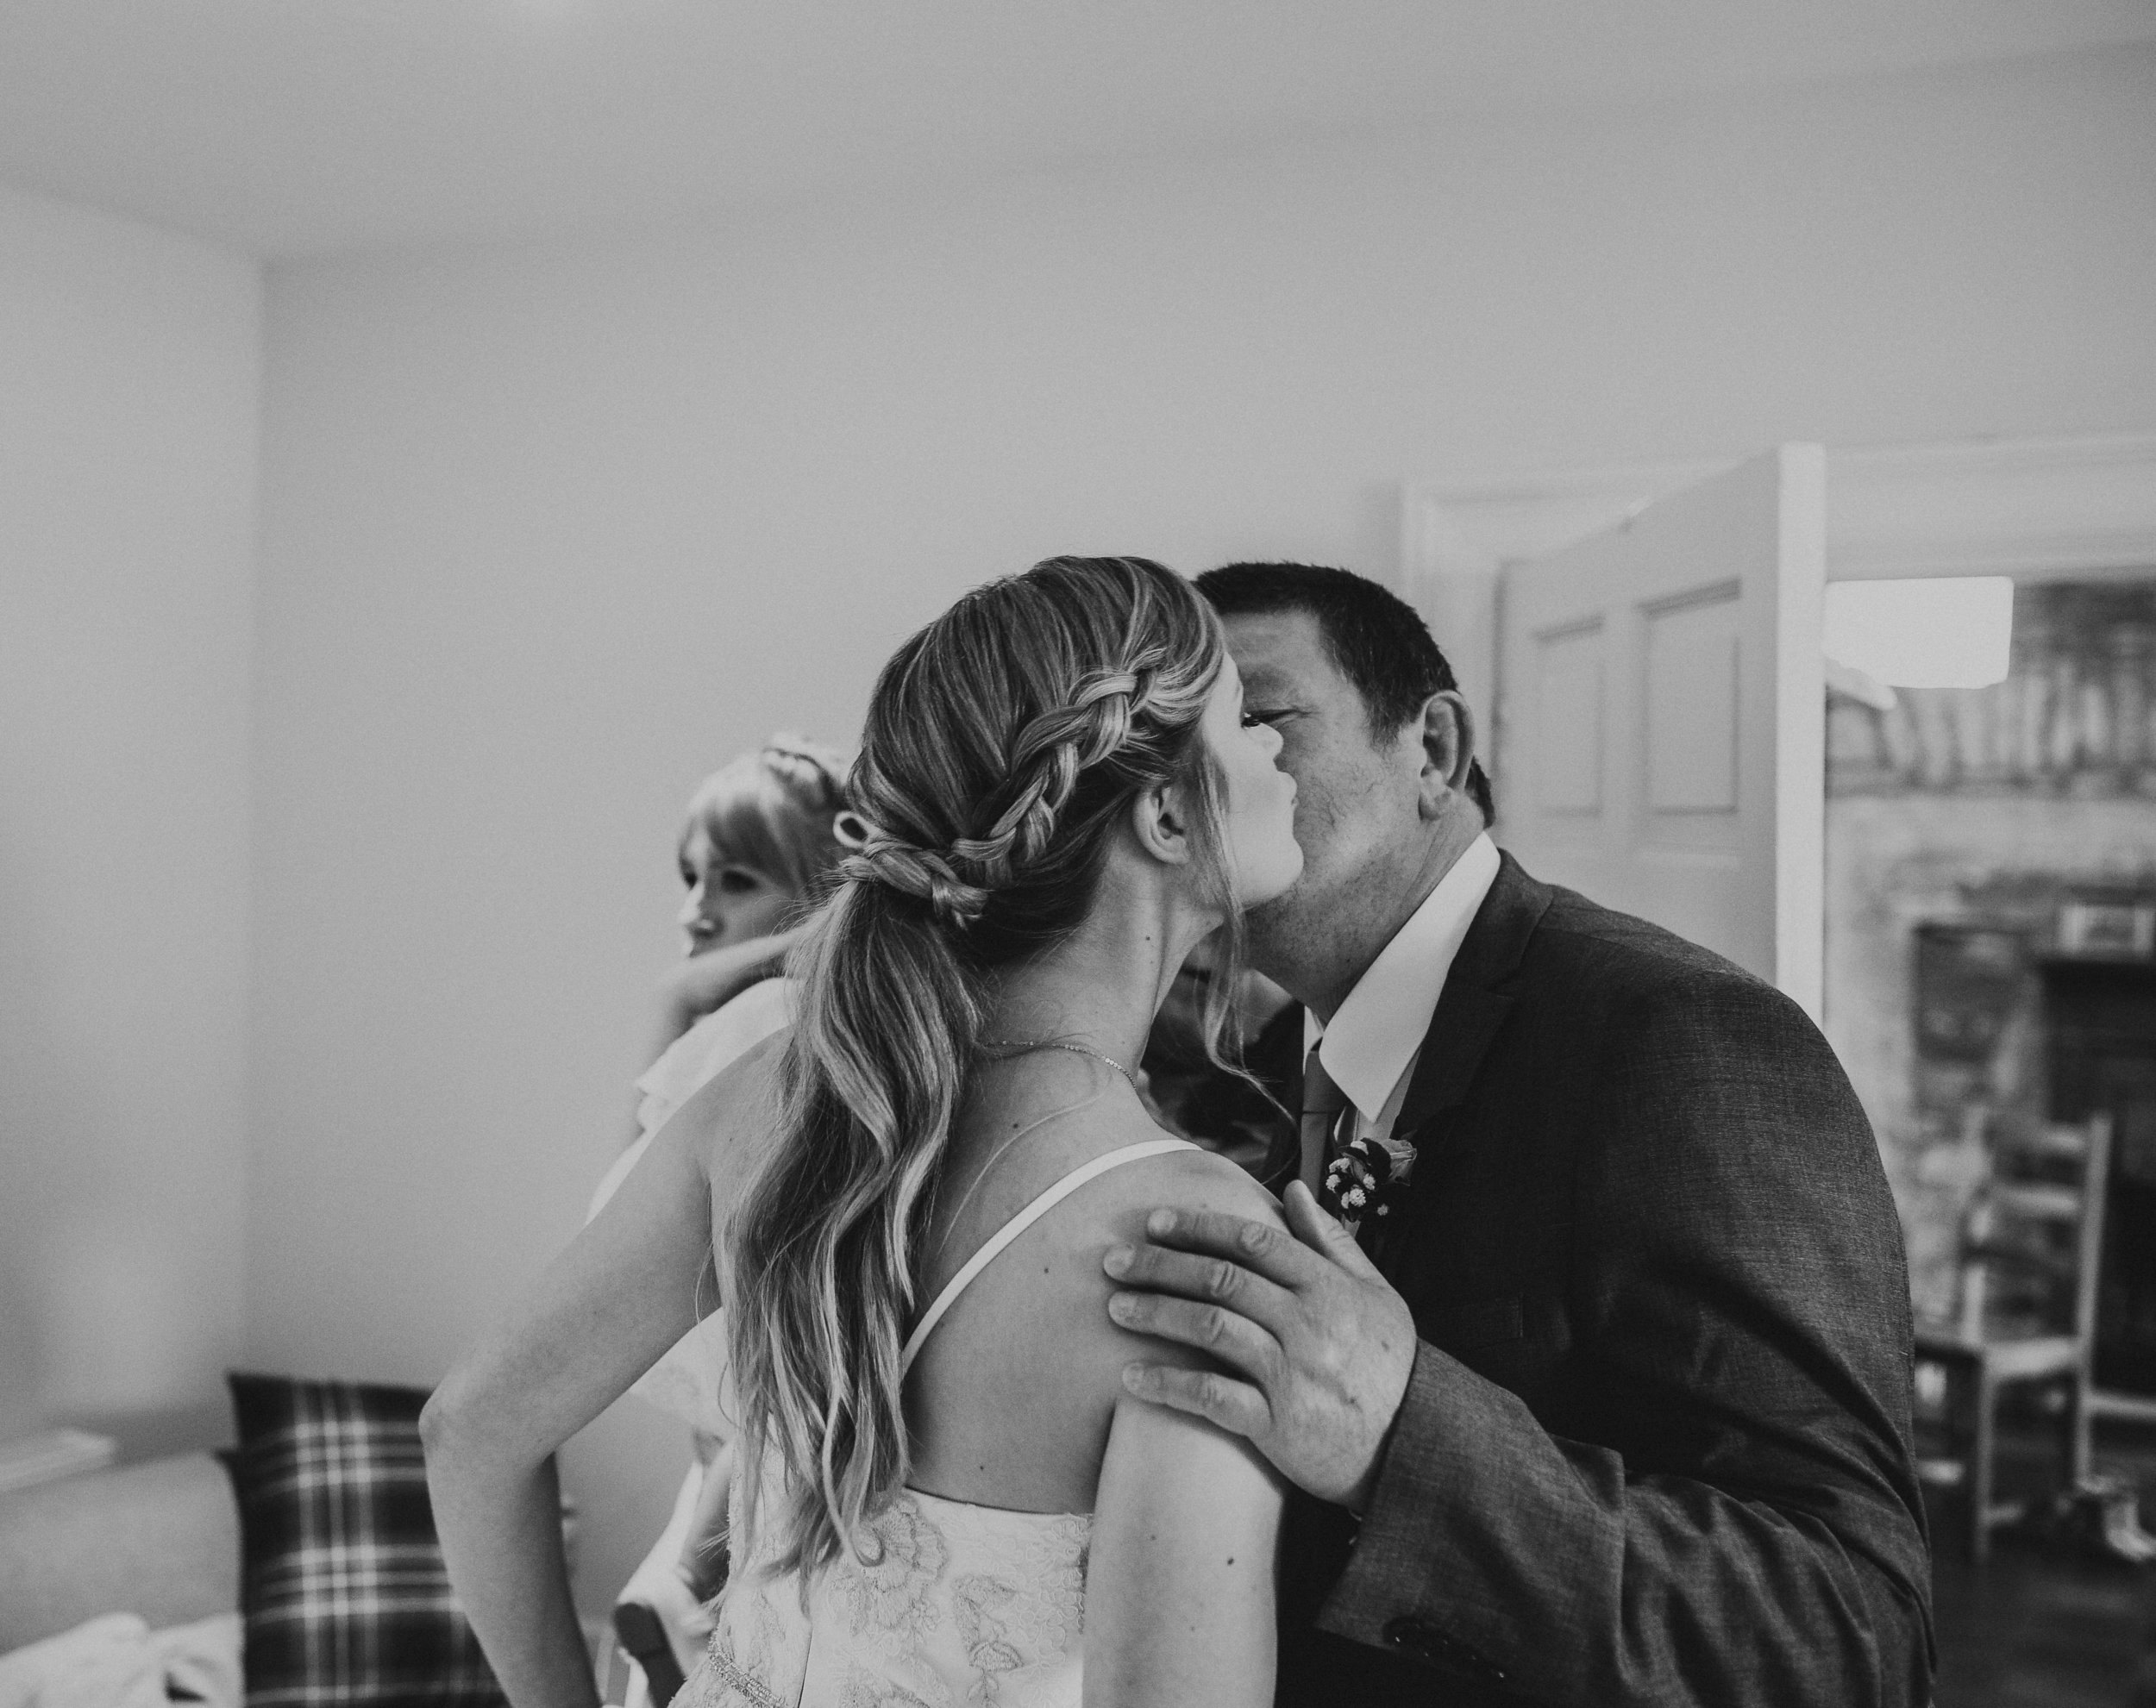 PJ_PHILLIPS_PHOTOGRAPHY_EDINBURGH_WEDDERBURN_BARNS_WEDDING_EDINBURGH_WEDDING_PHOTOGRAPHER_56.jpg